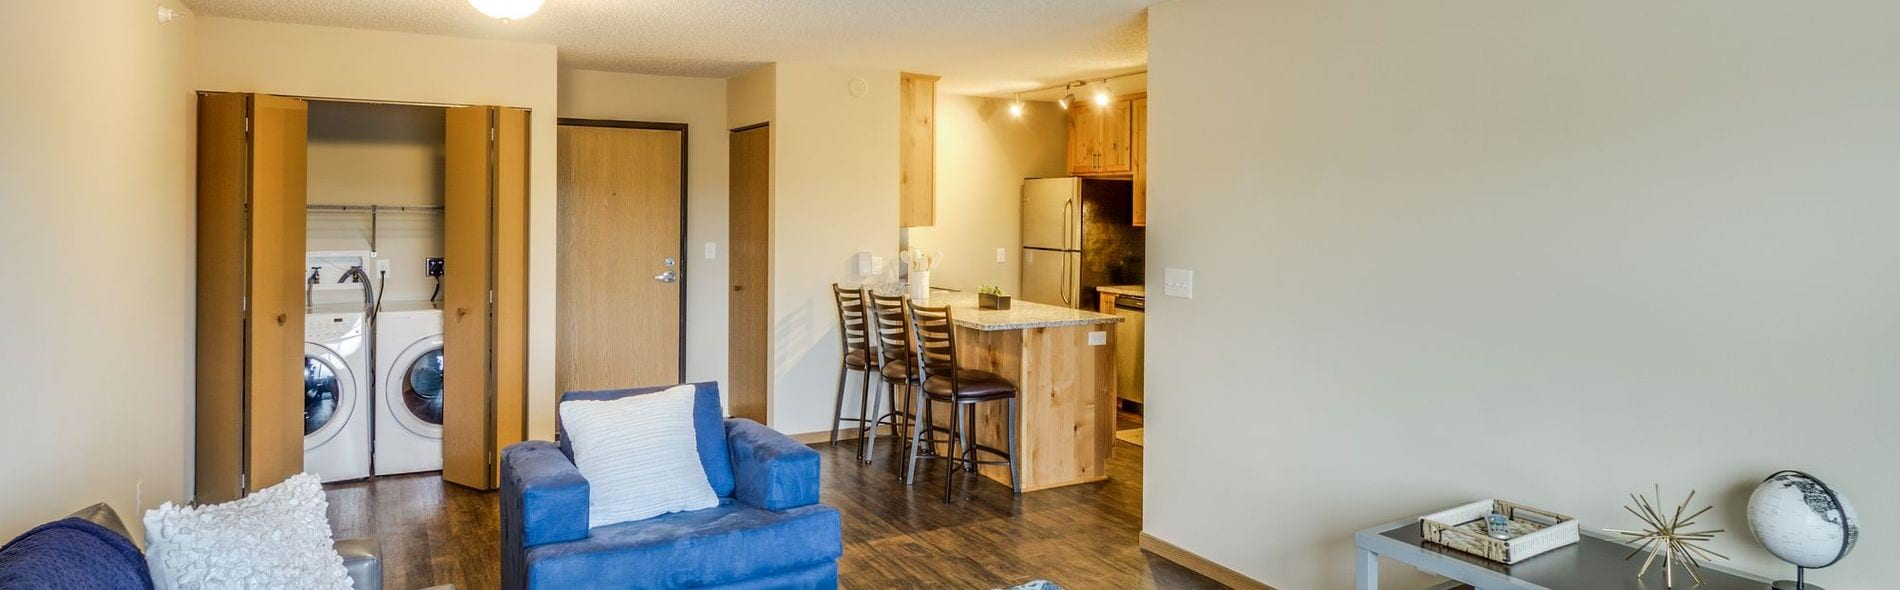 Craigslist Duluth Superior >> Apartments For Rent In Duluth Mn Campus Park Apartments